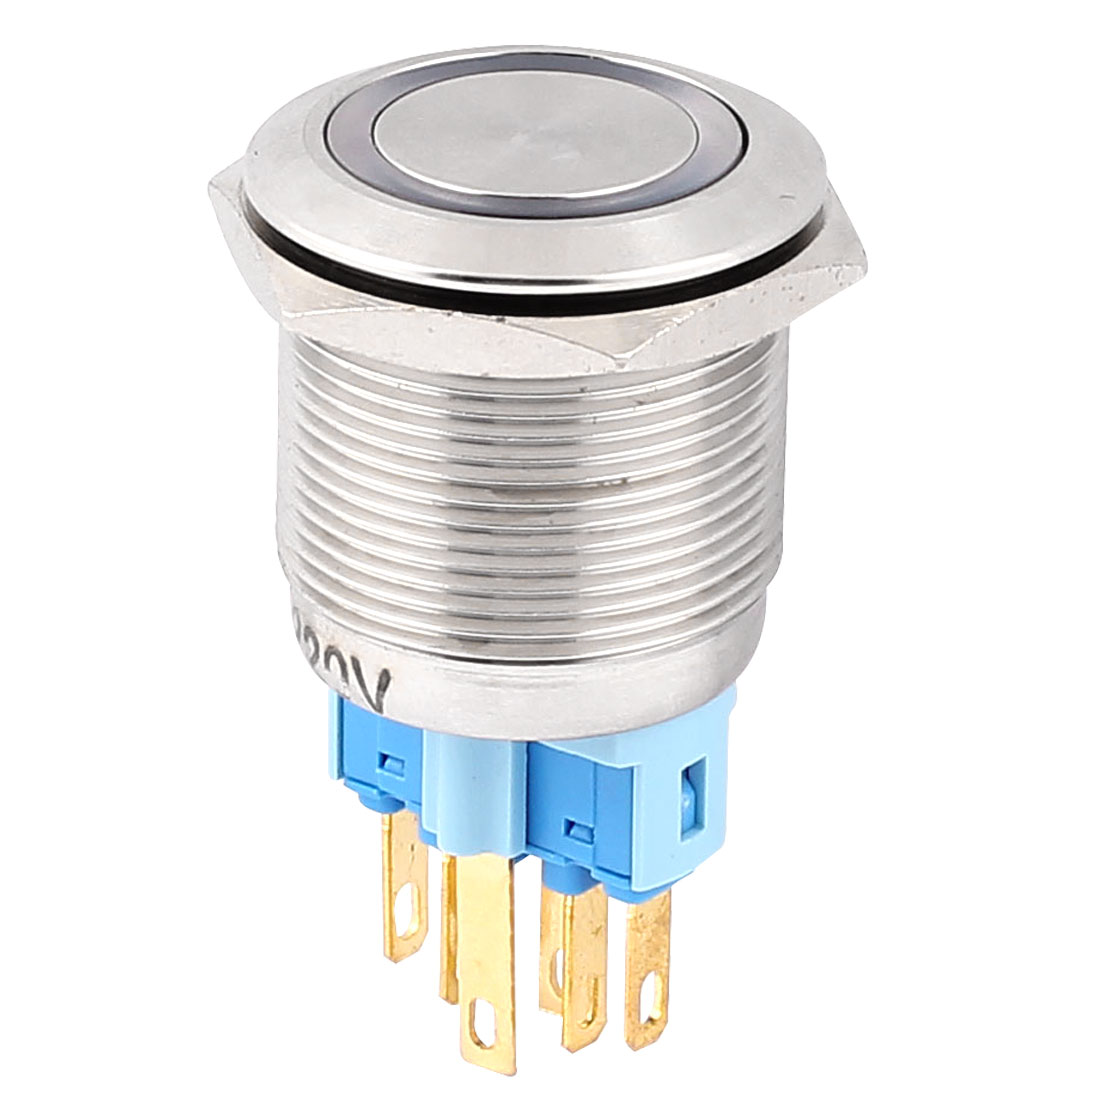 AC 220V 18mm Blue LED Light 22mm Mounted Thread 6 Pins DPST NO/NC Latching Push Button Switch